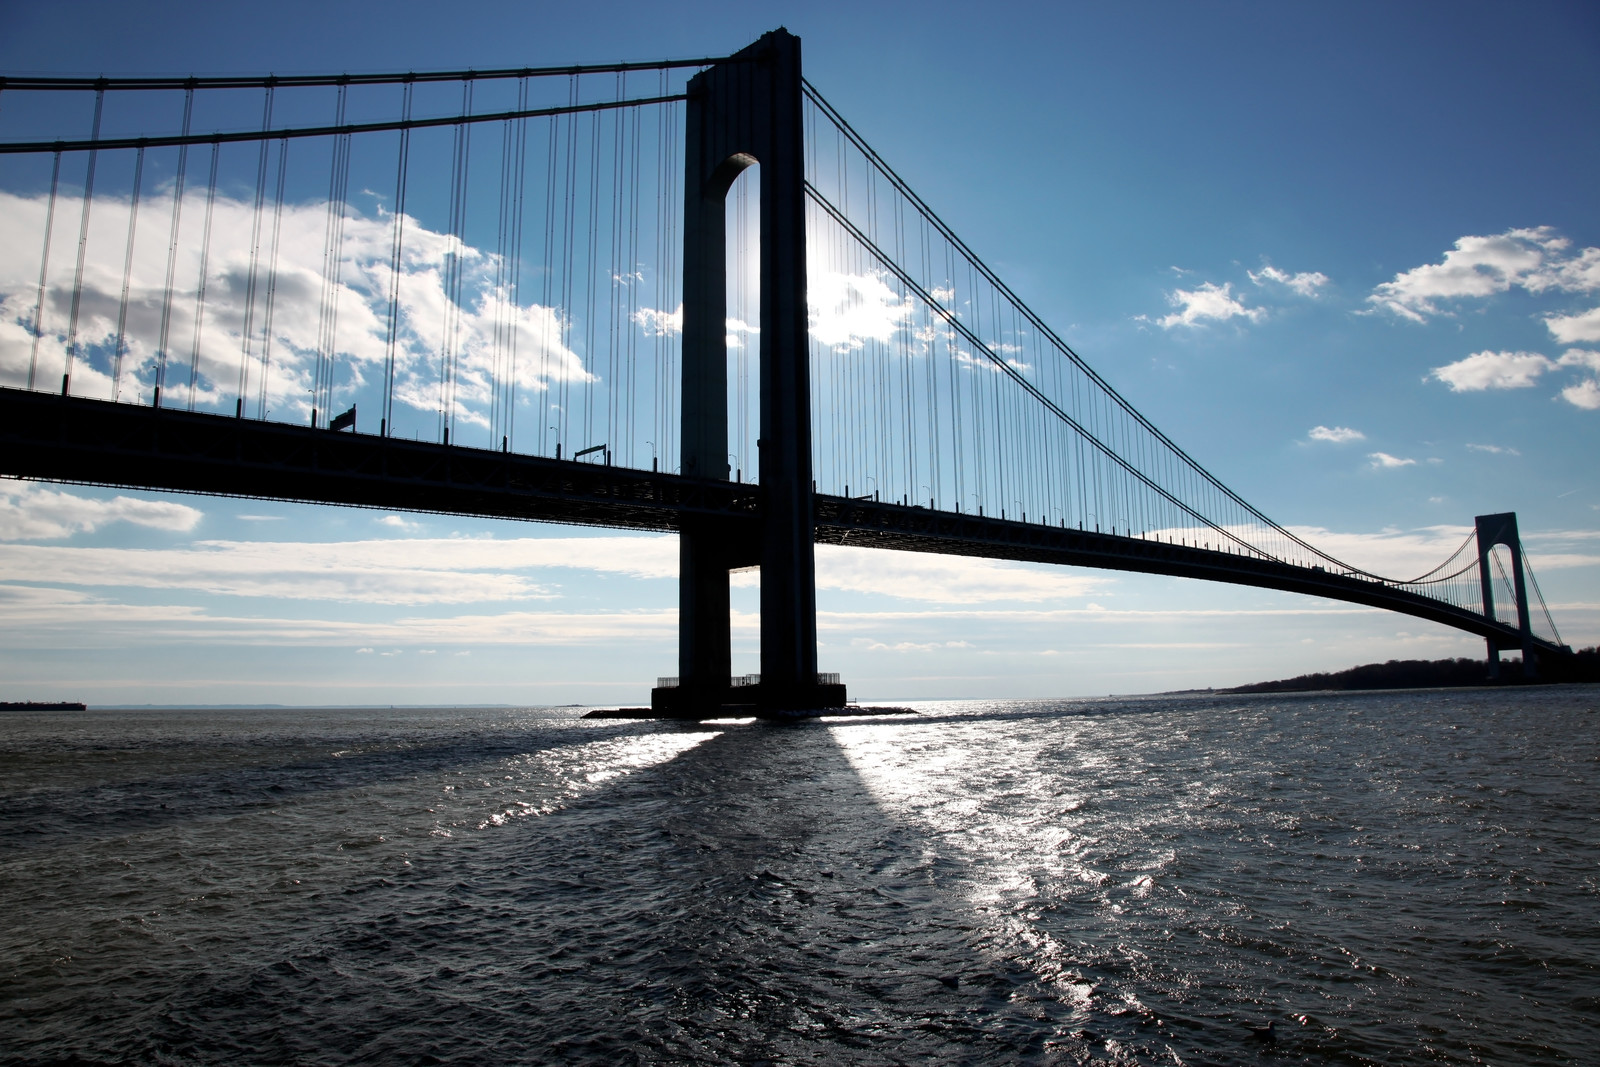 Verrazano  bridge from Brooklyn to Staten Island on a bright day with blue skies and white clouds